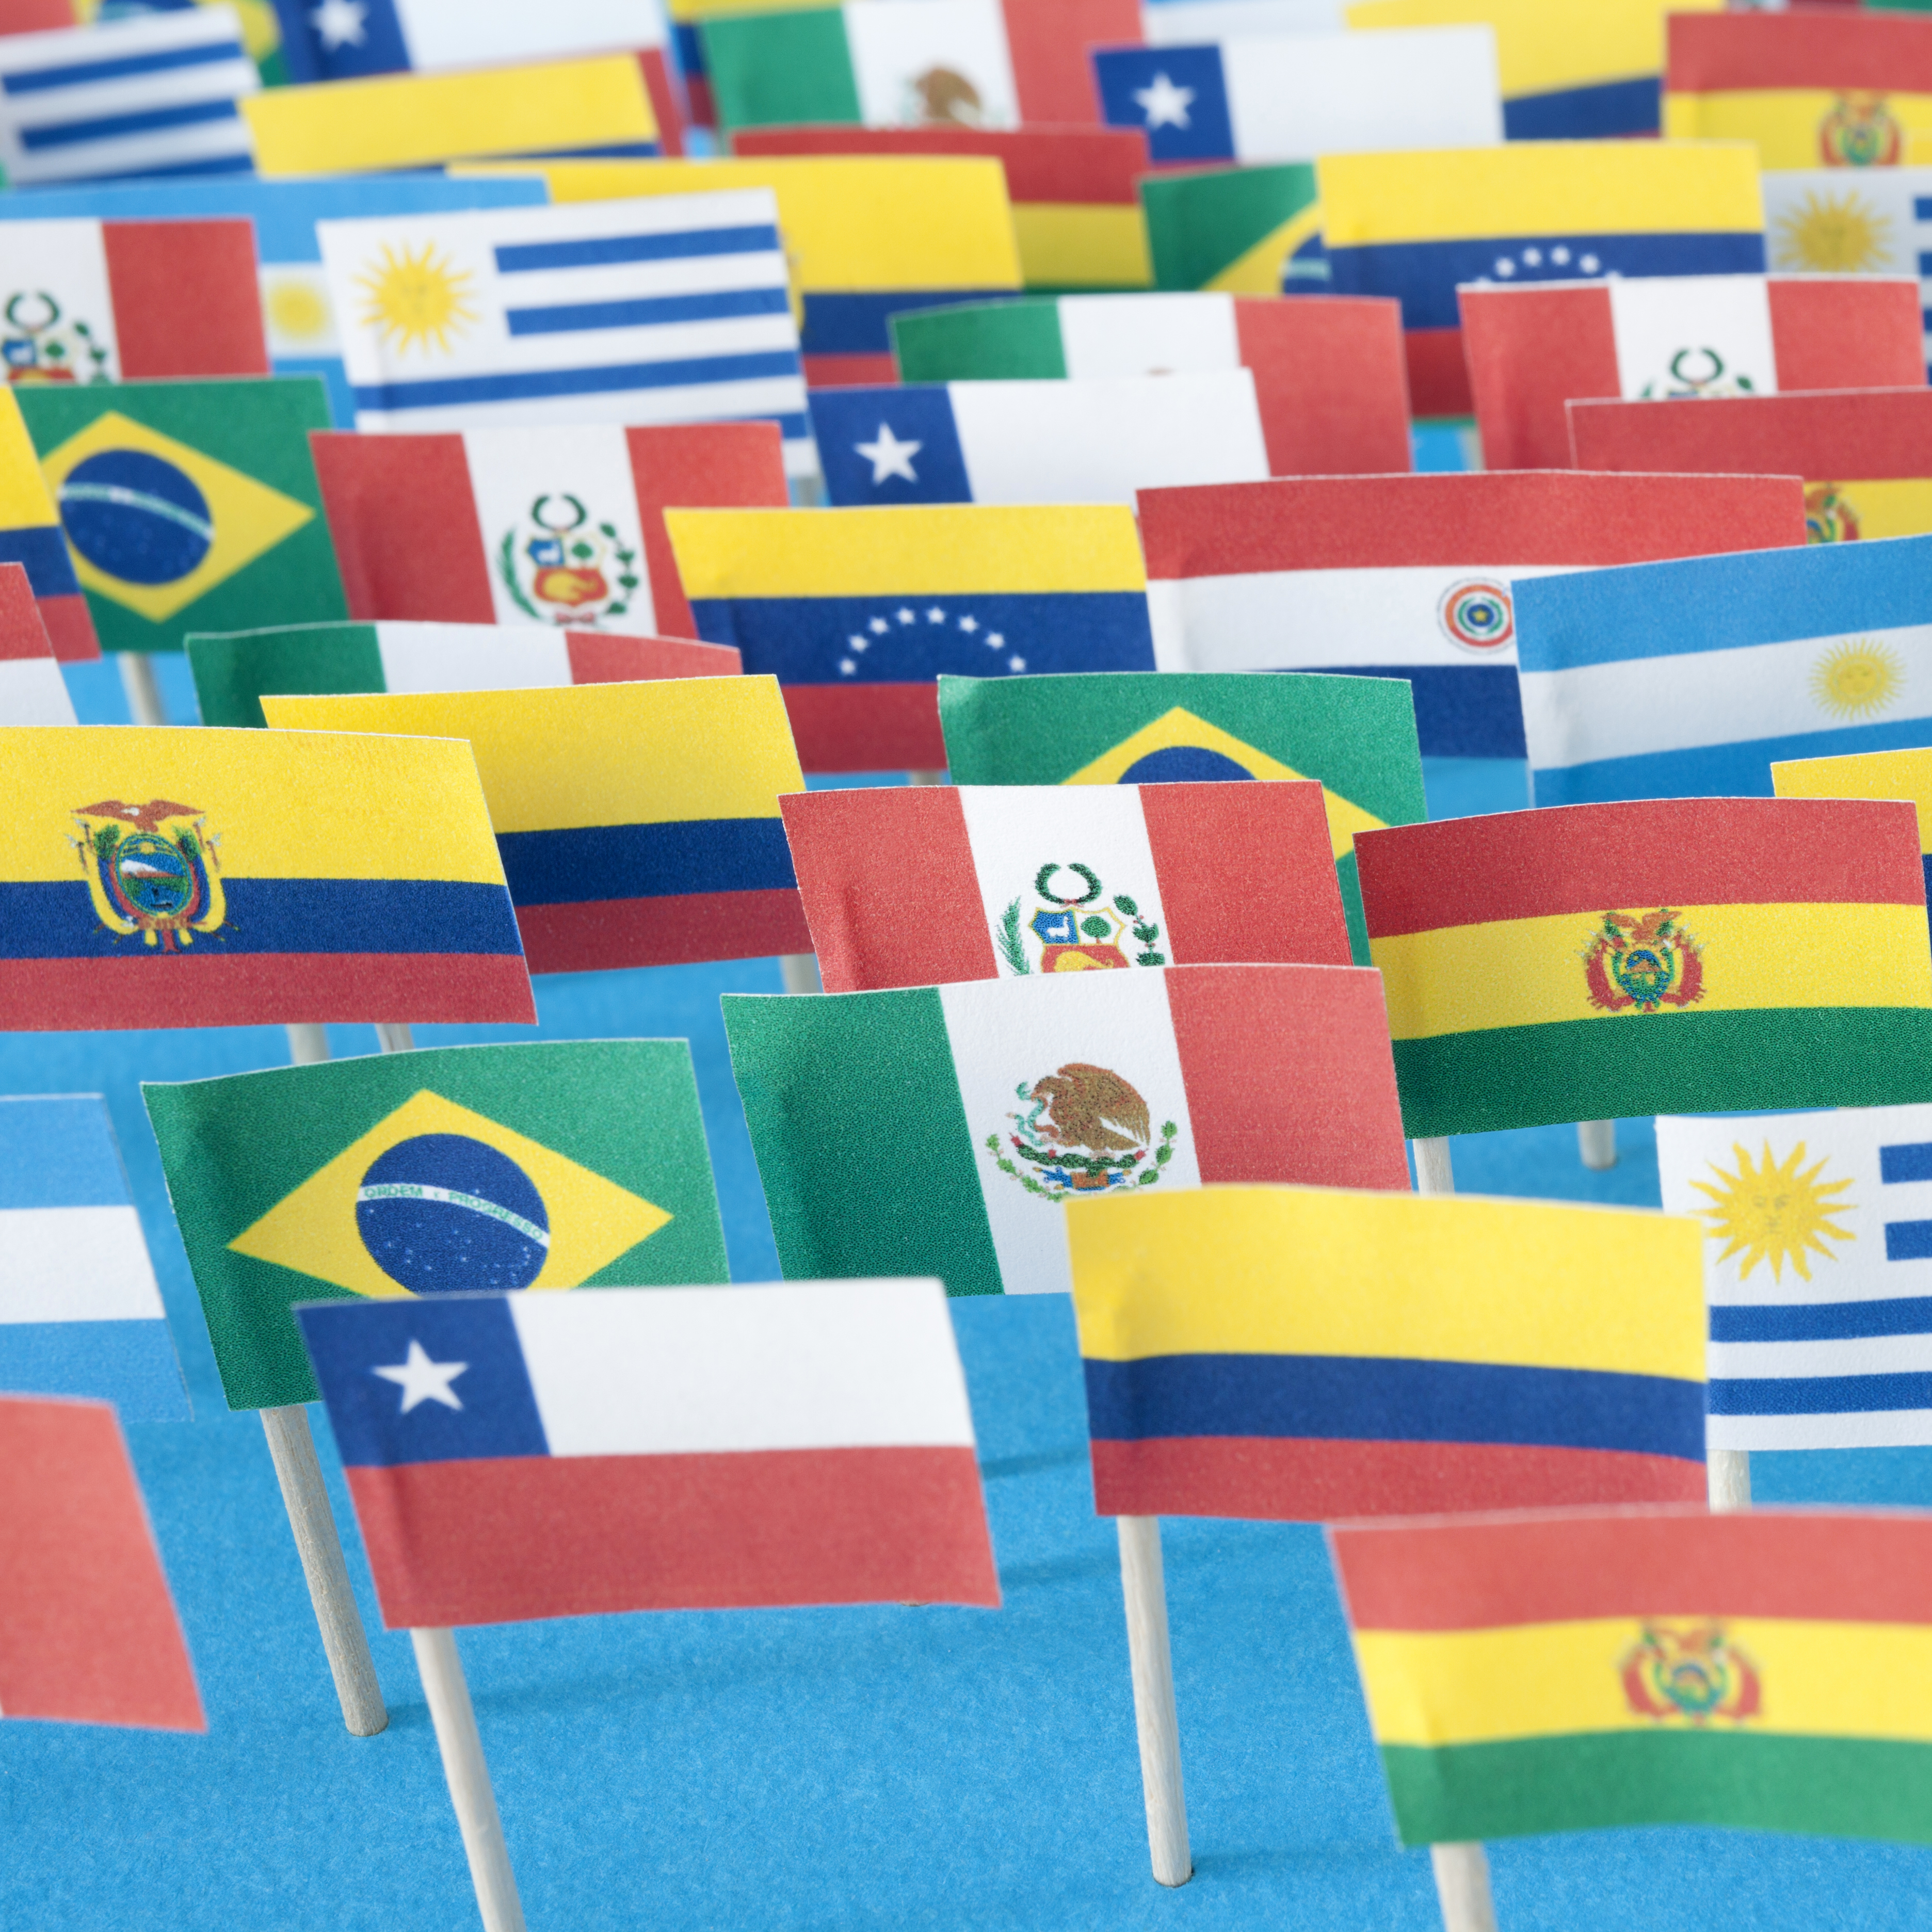 A selection of handmade flags of countries from across Latin America.